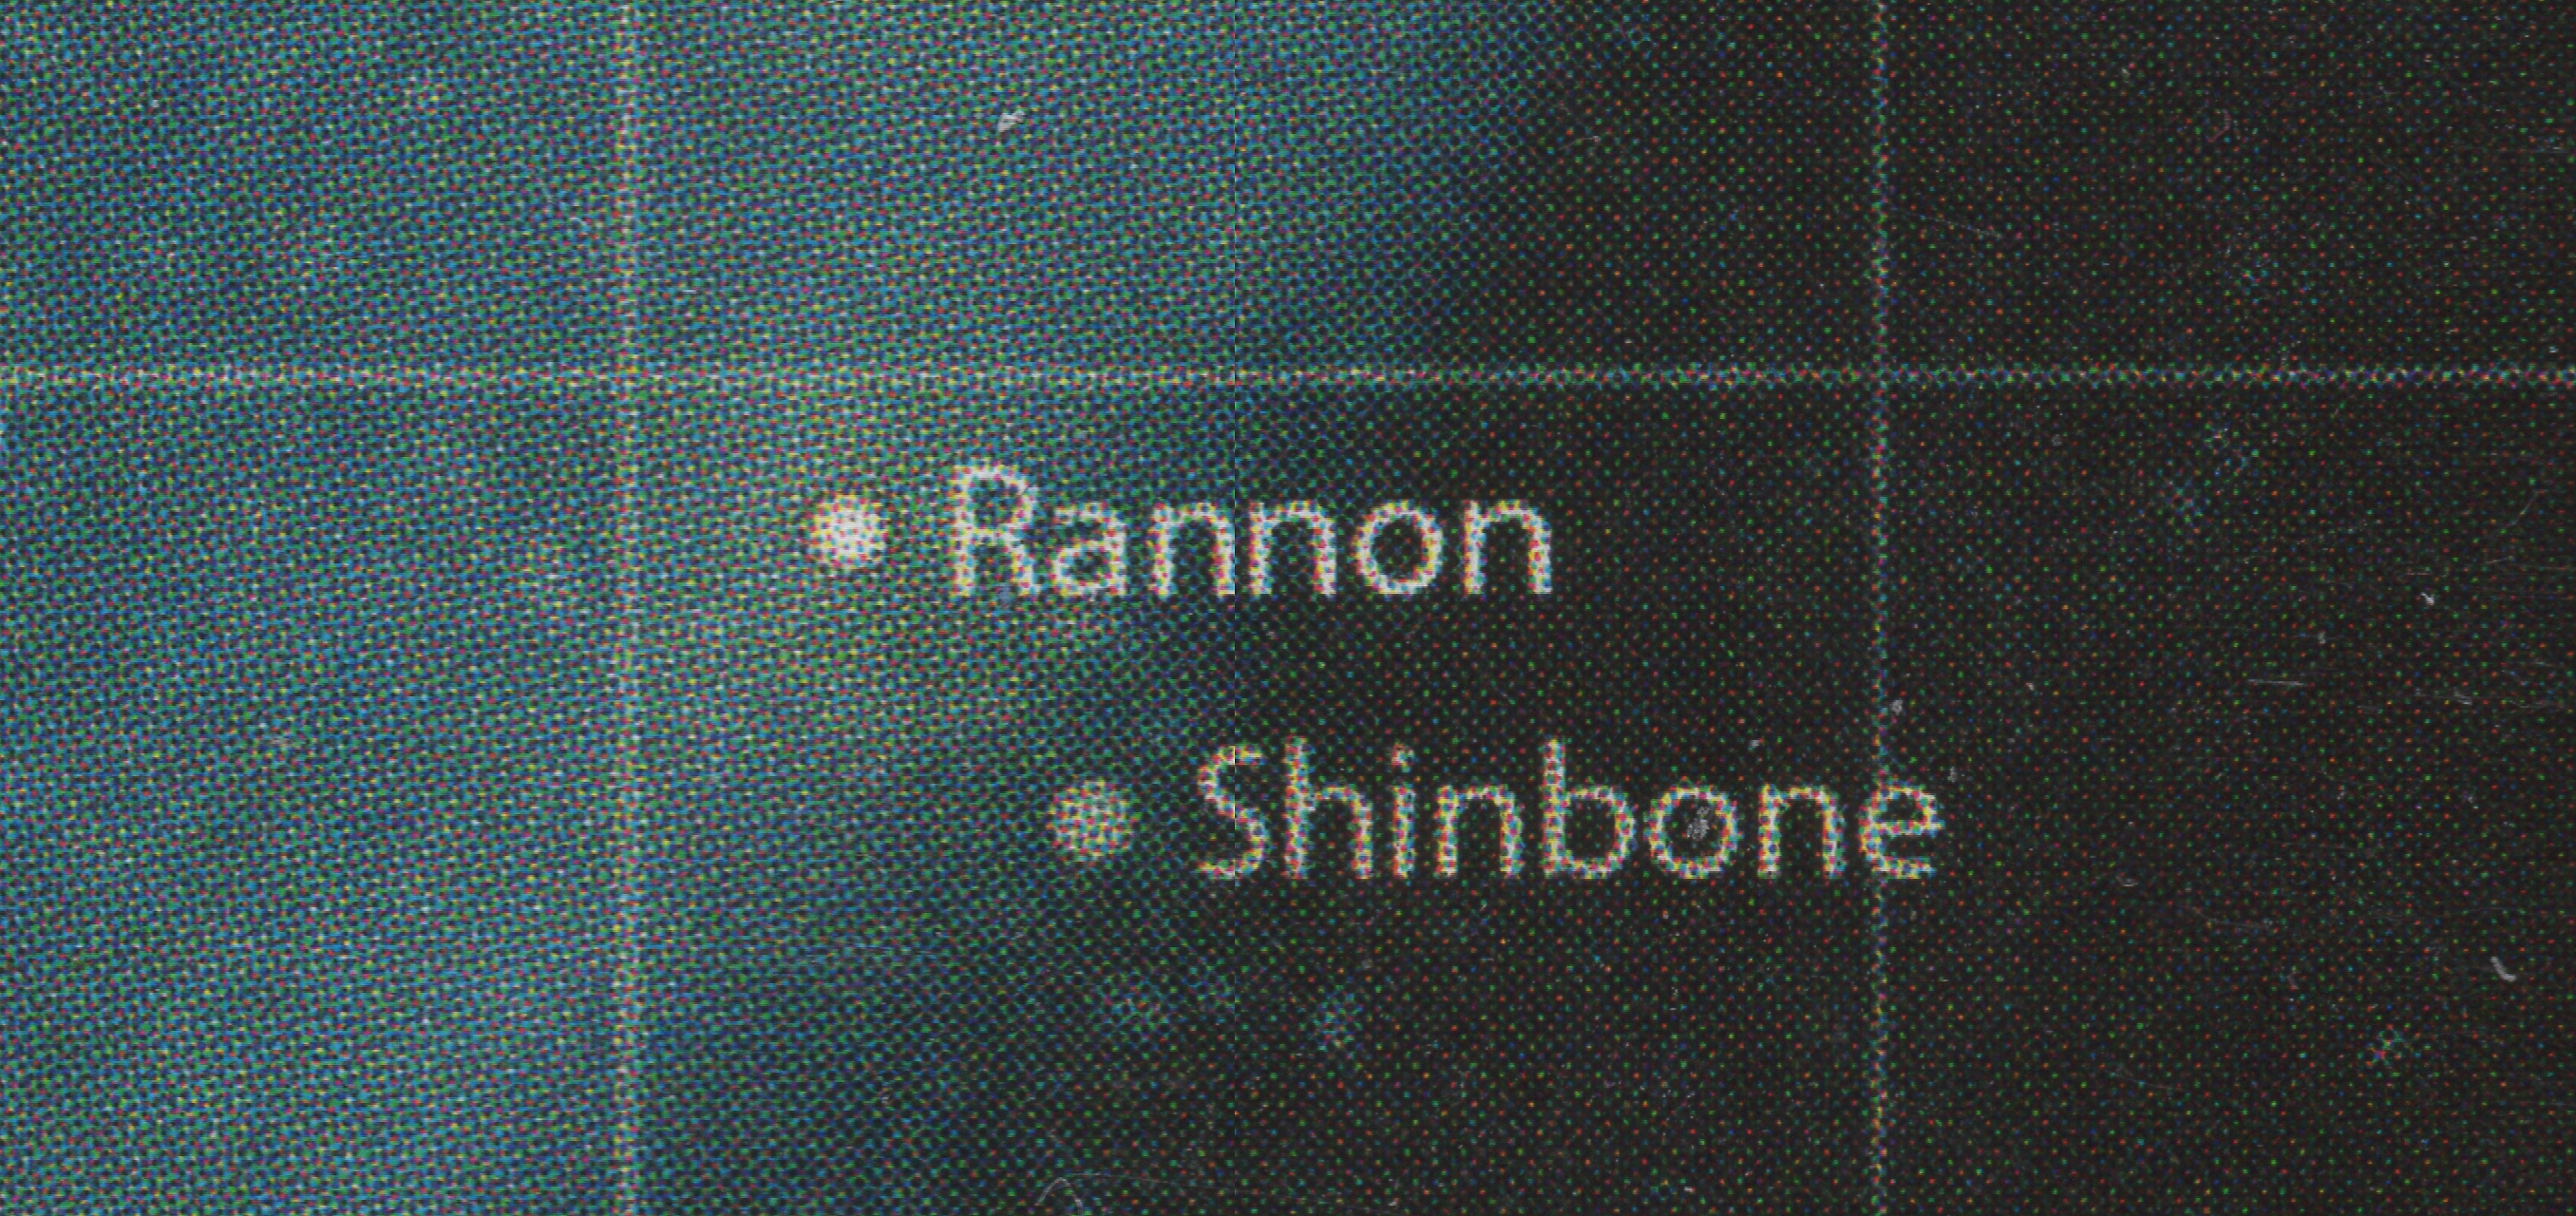 Rannon and Shinbone.jpg